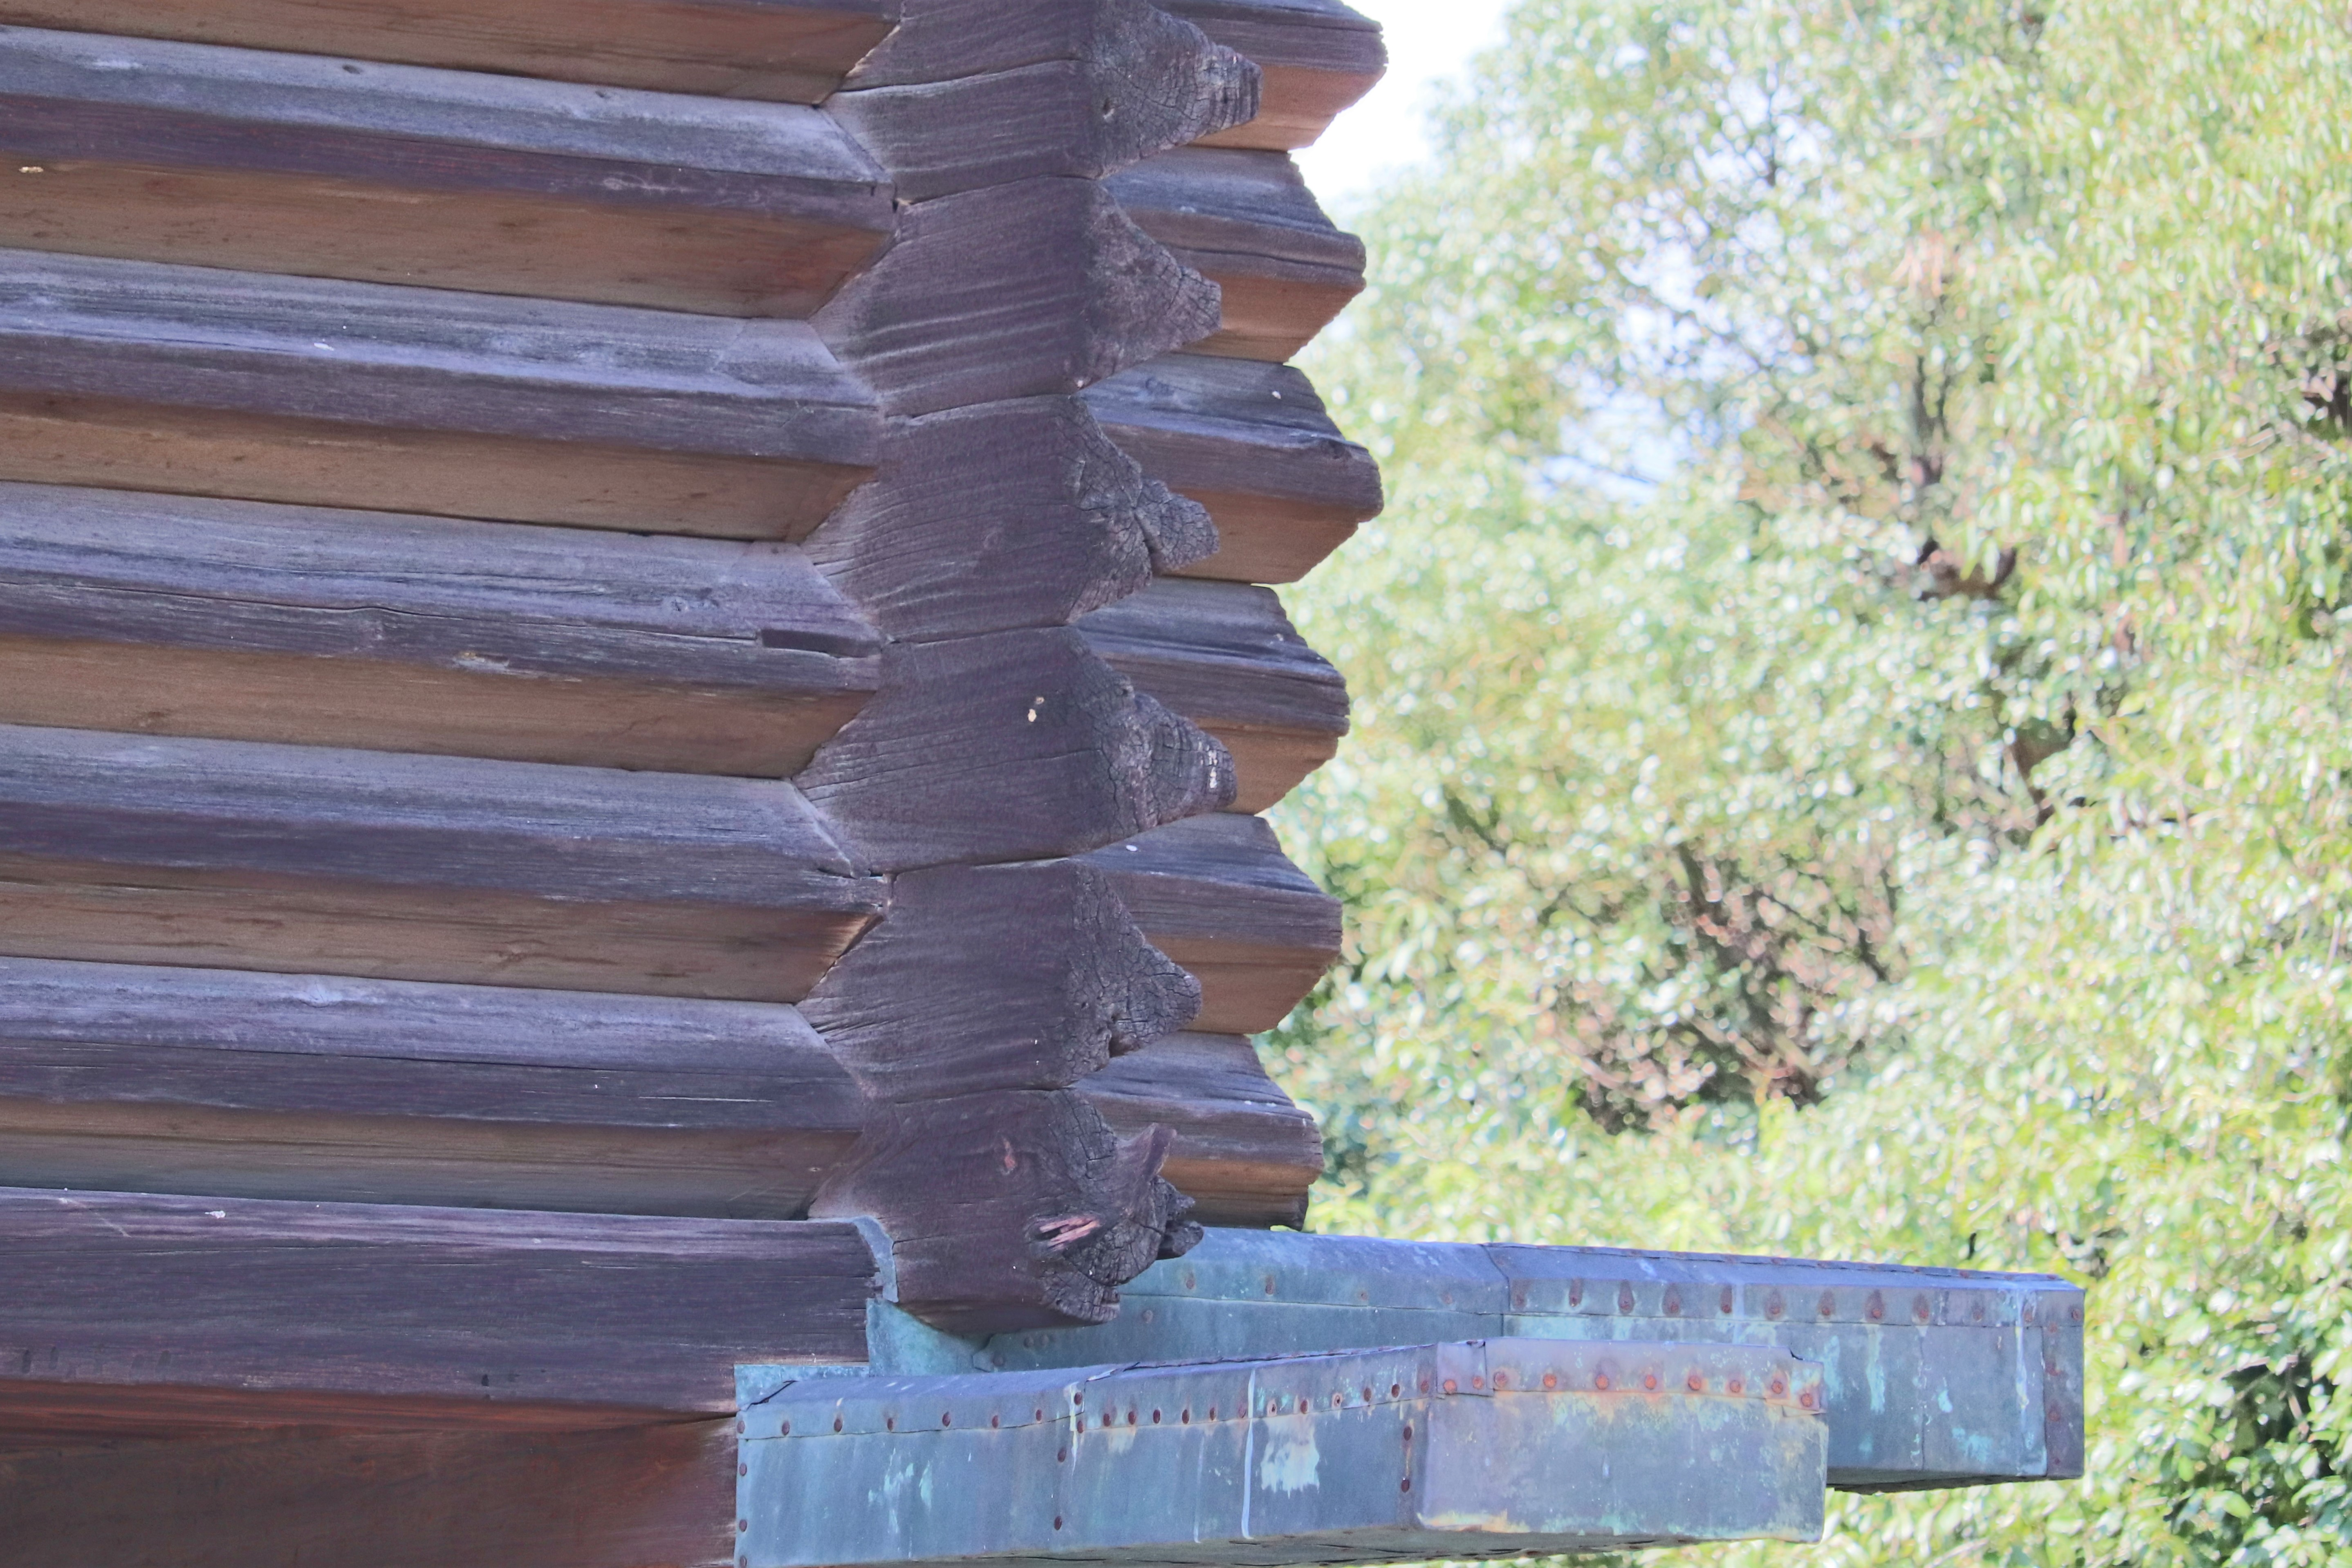 characteristic triangle shaped joined logs of the shoso-in at todai-ji temple